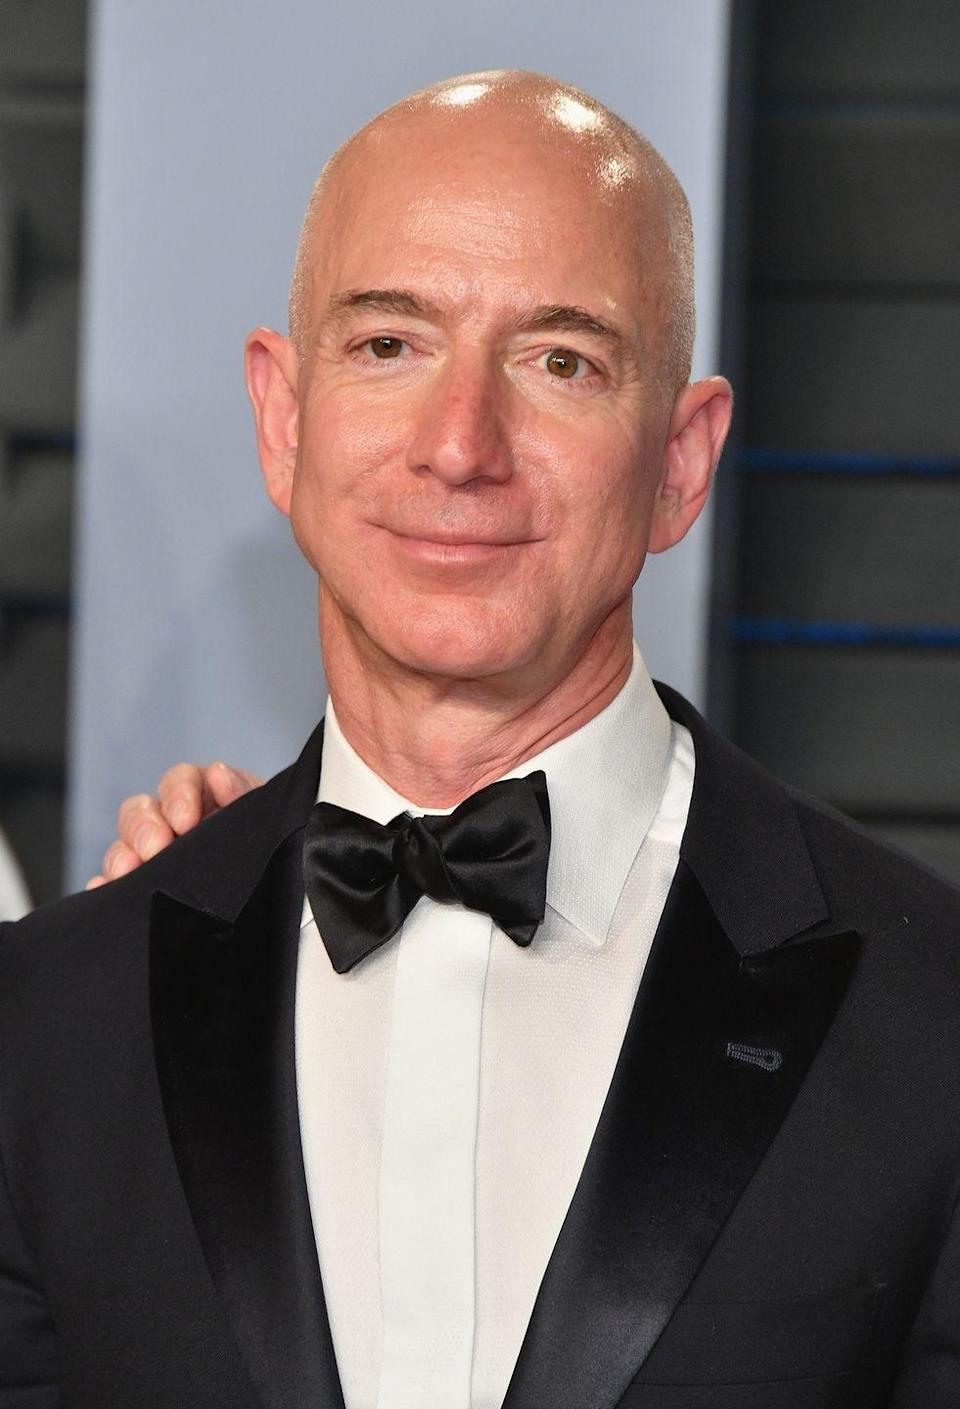 "<p>Before he was one of the <a href=""https://www.cbsnews.com/pictures/richest-people-in-world-forbes/21/"" rel=""nofollow noopener"" target=""_blank"" data-ylk=""slk:world's richest men"" class=""link rapid-noclick-resp"">world's richest men</a>, Bezos worked at McDonald's. In an interview <a href=""http://goldenopportunitybook.com/jeffrey-p-bezos/"" rel=""nofollow noopener"" target=""_blank"" data-ylk=""slk:with Teets"" class=""link rapid-noclick-resp"">with Teets</a> for <a href=""https://www.amazon.com/Golden-Opportunity-Remarkable-Careers-McDonalds/dp/1604332794?tag=syn-yahoo-20&ascsubtag=%5Bartid%7C2140.g.27361202%5Bsrc%7Cyahoo-us"" rel=""nofollow noopener"" target=""_blank"" data-ylk=""slk:Golden Opportunity: Remarkable Careers That Began at McDonald's"" class=""link rapid-noclick-resp""><em>Golden Opportunity: Remarkable Careers That Began at McDonald's</em></a>, he said that the Saturday morning shift was his favorite: ""I would get a big bowl and crack 300 eggs in it,"" he recalled.</p>"